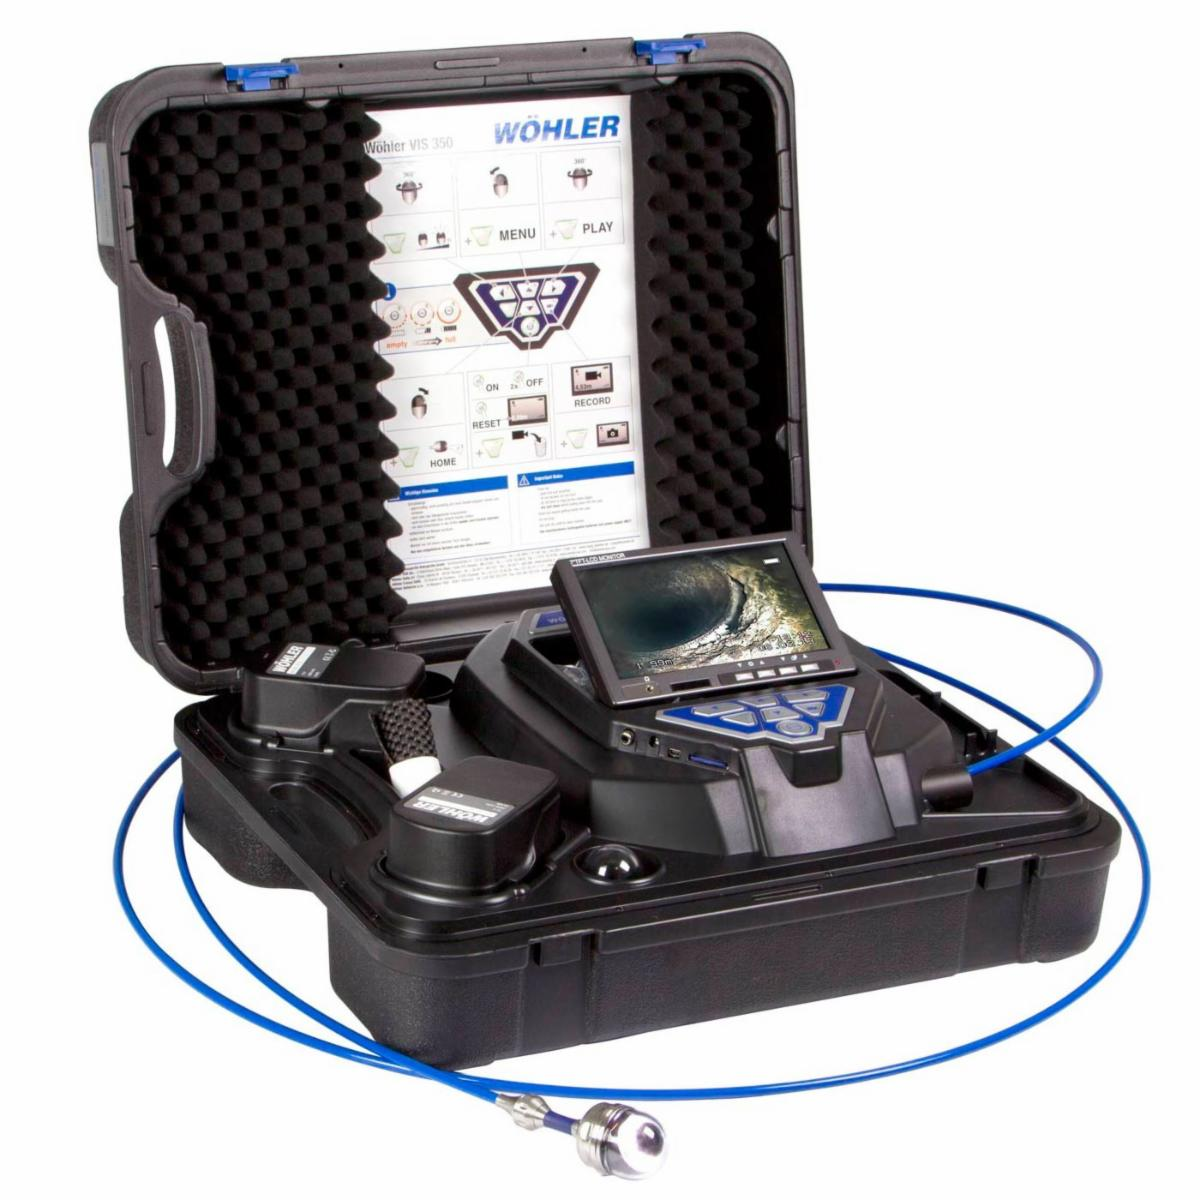 """WOHLER VIS 350 INSPECTION CAMERA WITH 1.5"""" CAMERA HEAD"""